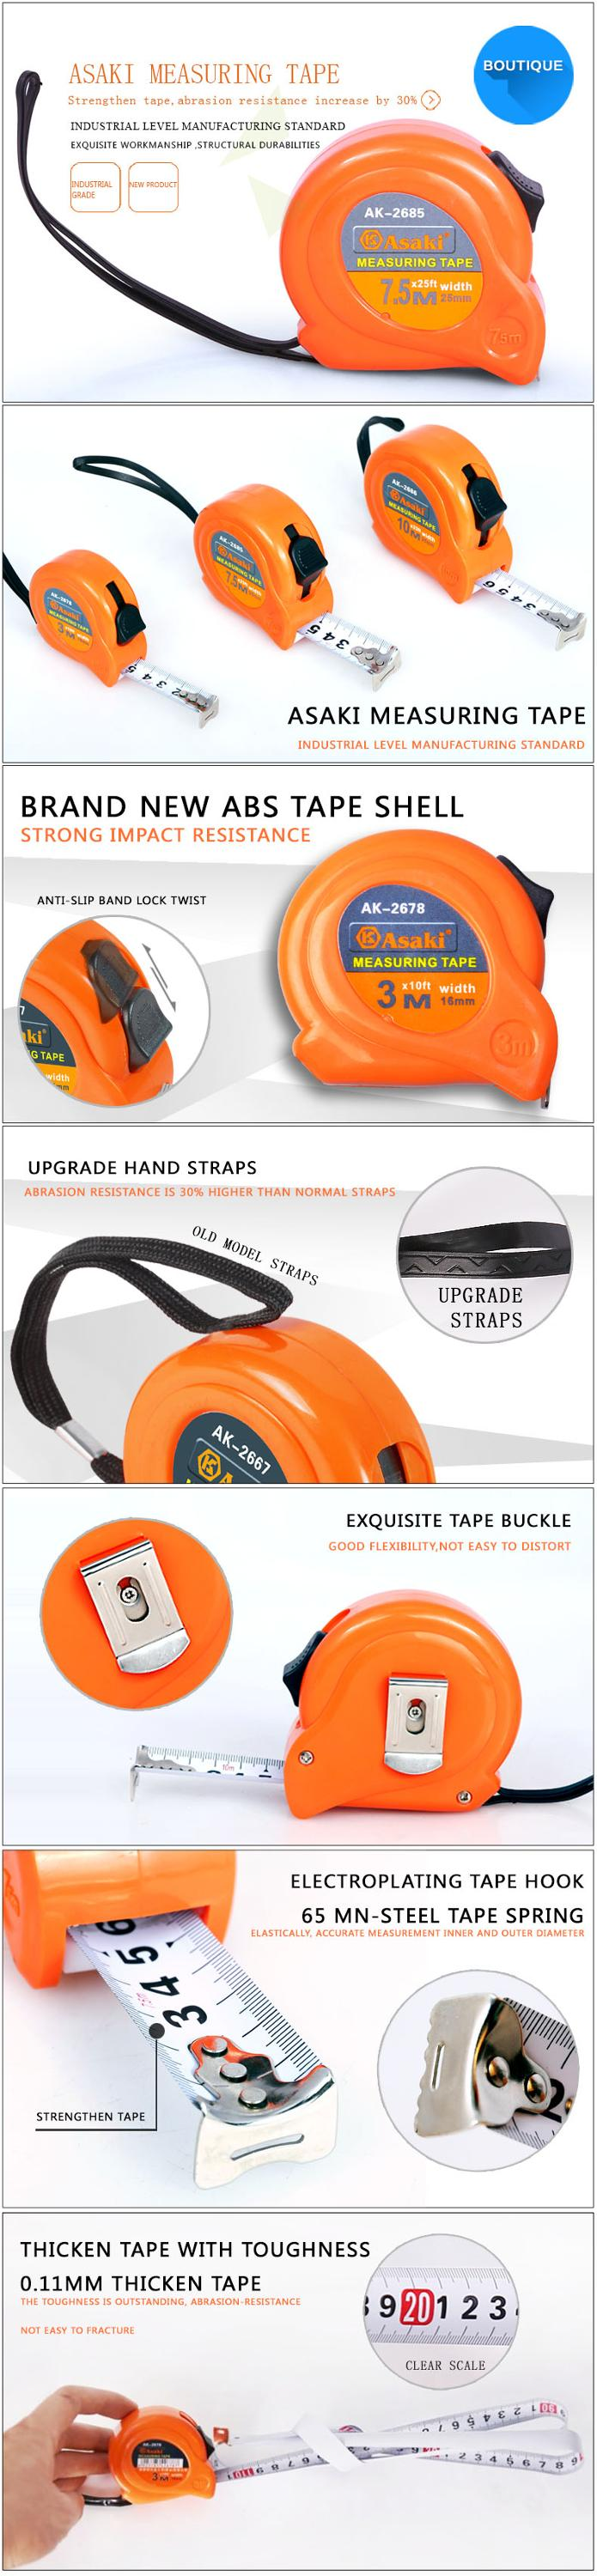 Hot sale 3M/5M/7.5M/10M steel reinforced measuring tape